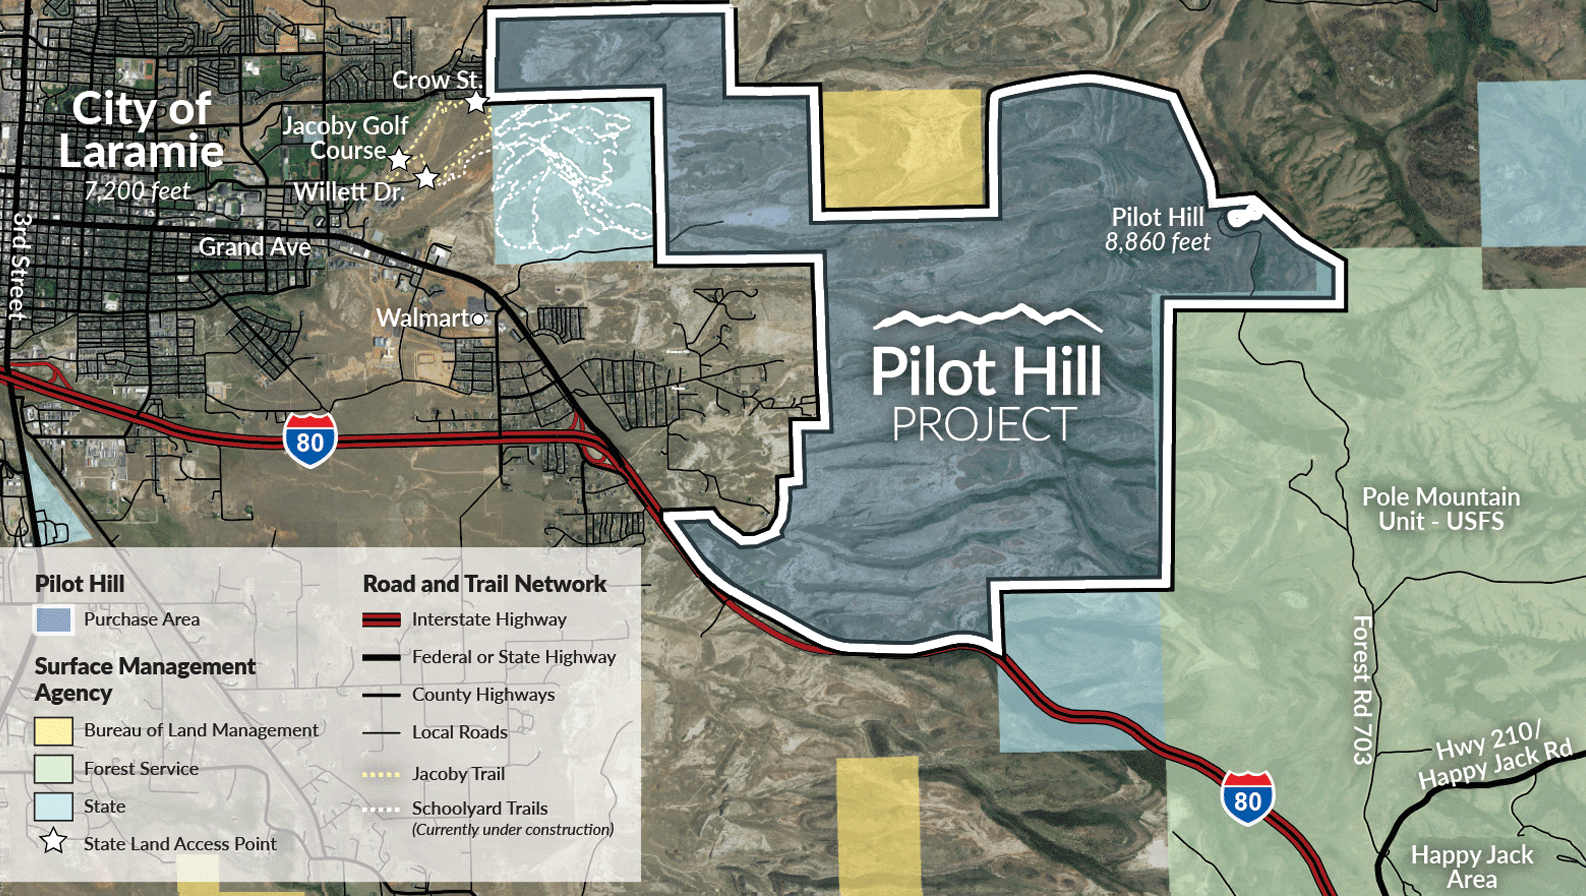 Pilot Hill Project map